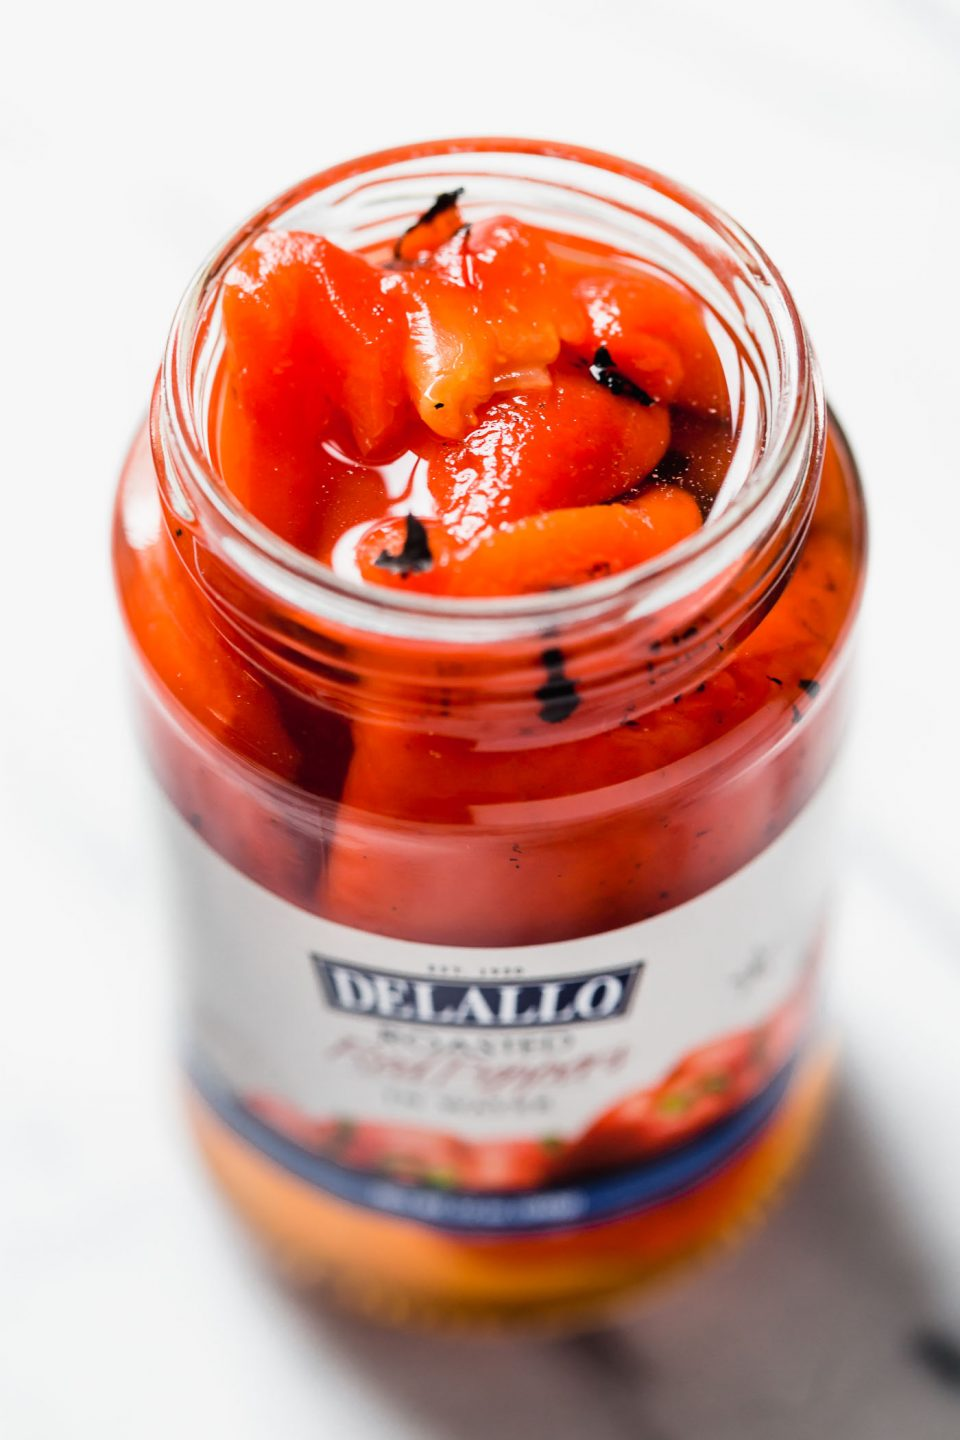 Jar of DeLallo roasted red peppers